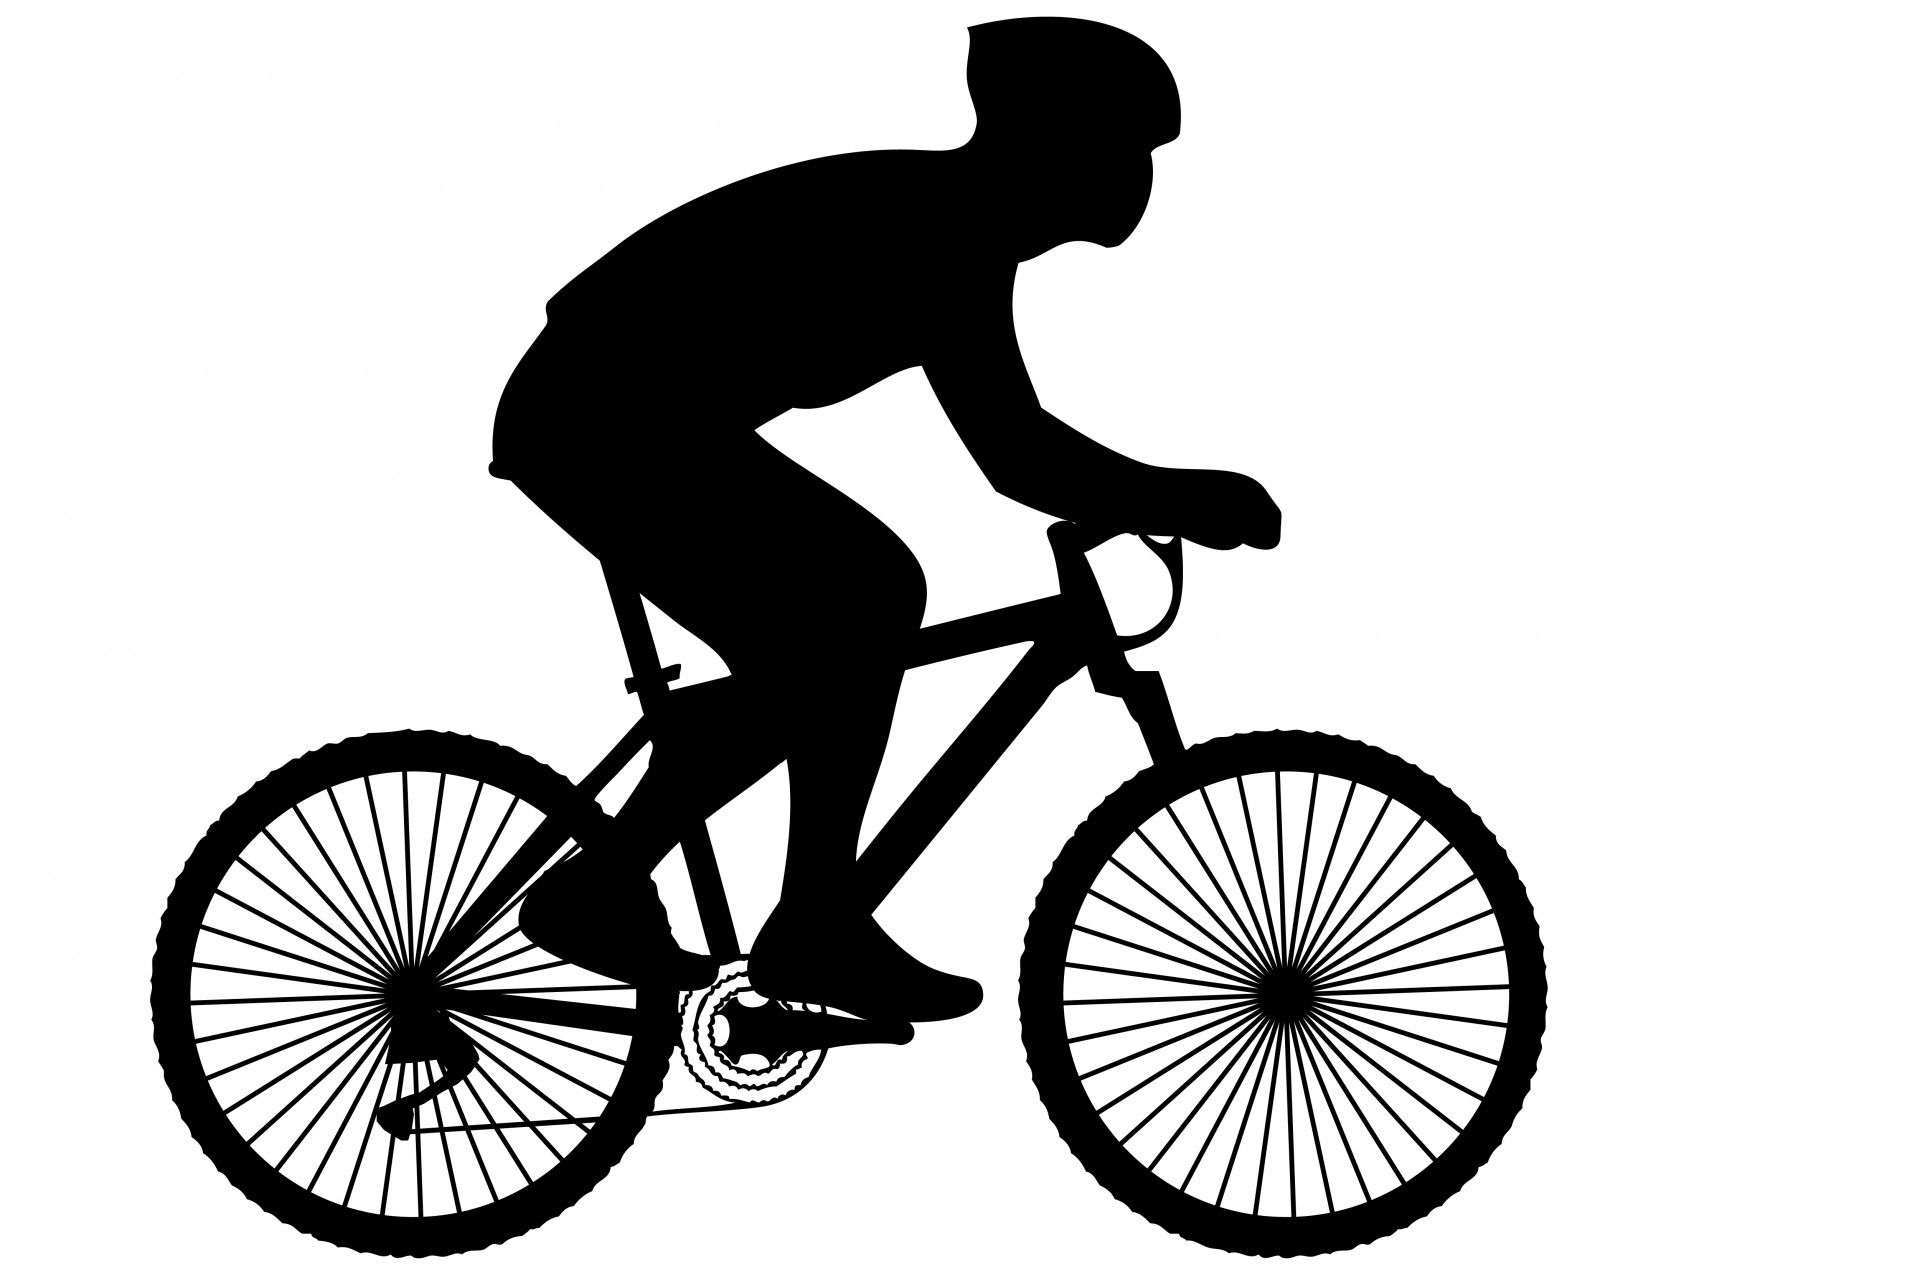 Racing Bicycle Clipart Black Silhouette Of A Cyclist On A Racing Bike Clipart